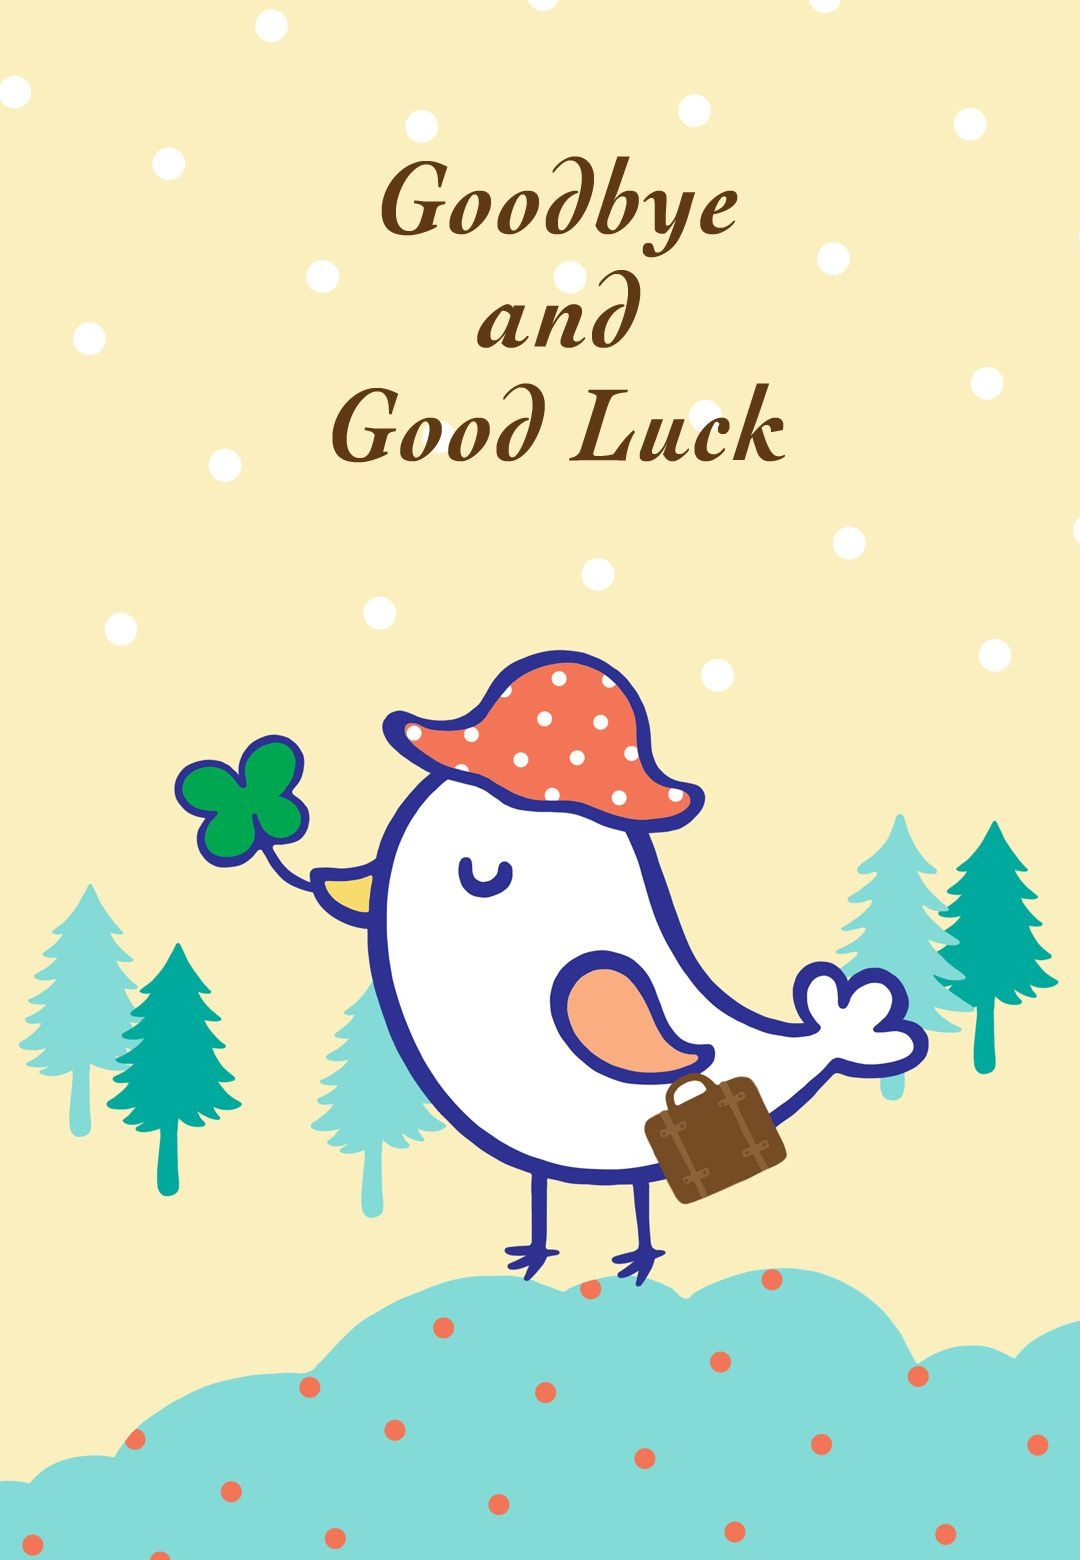 Free Printable Goodbye And Good Luck Greeting Card   Littlestar - Free Printable Funny Boss Day Cards